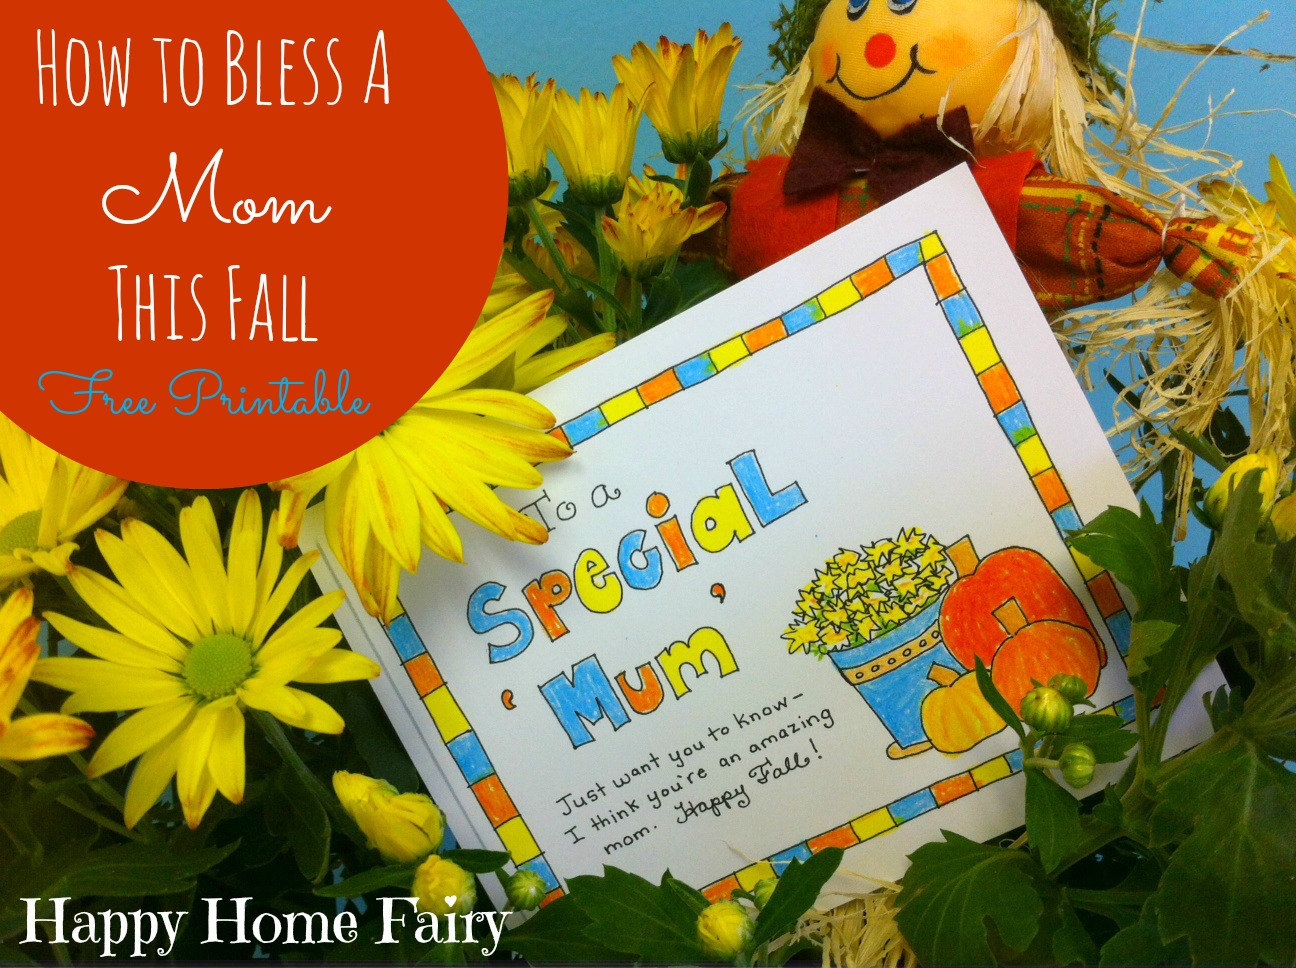 photograph relating to Mom Bucks Printable named In the direction of a Exclusive Mum - Totally free Printable! - Content House Fairy